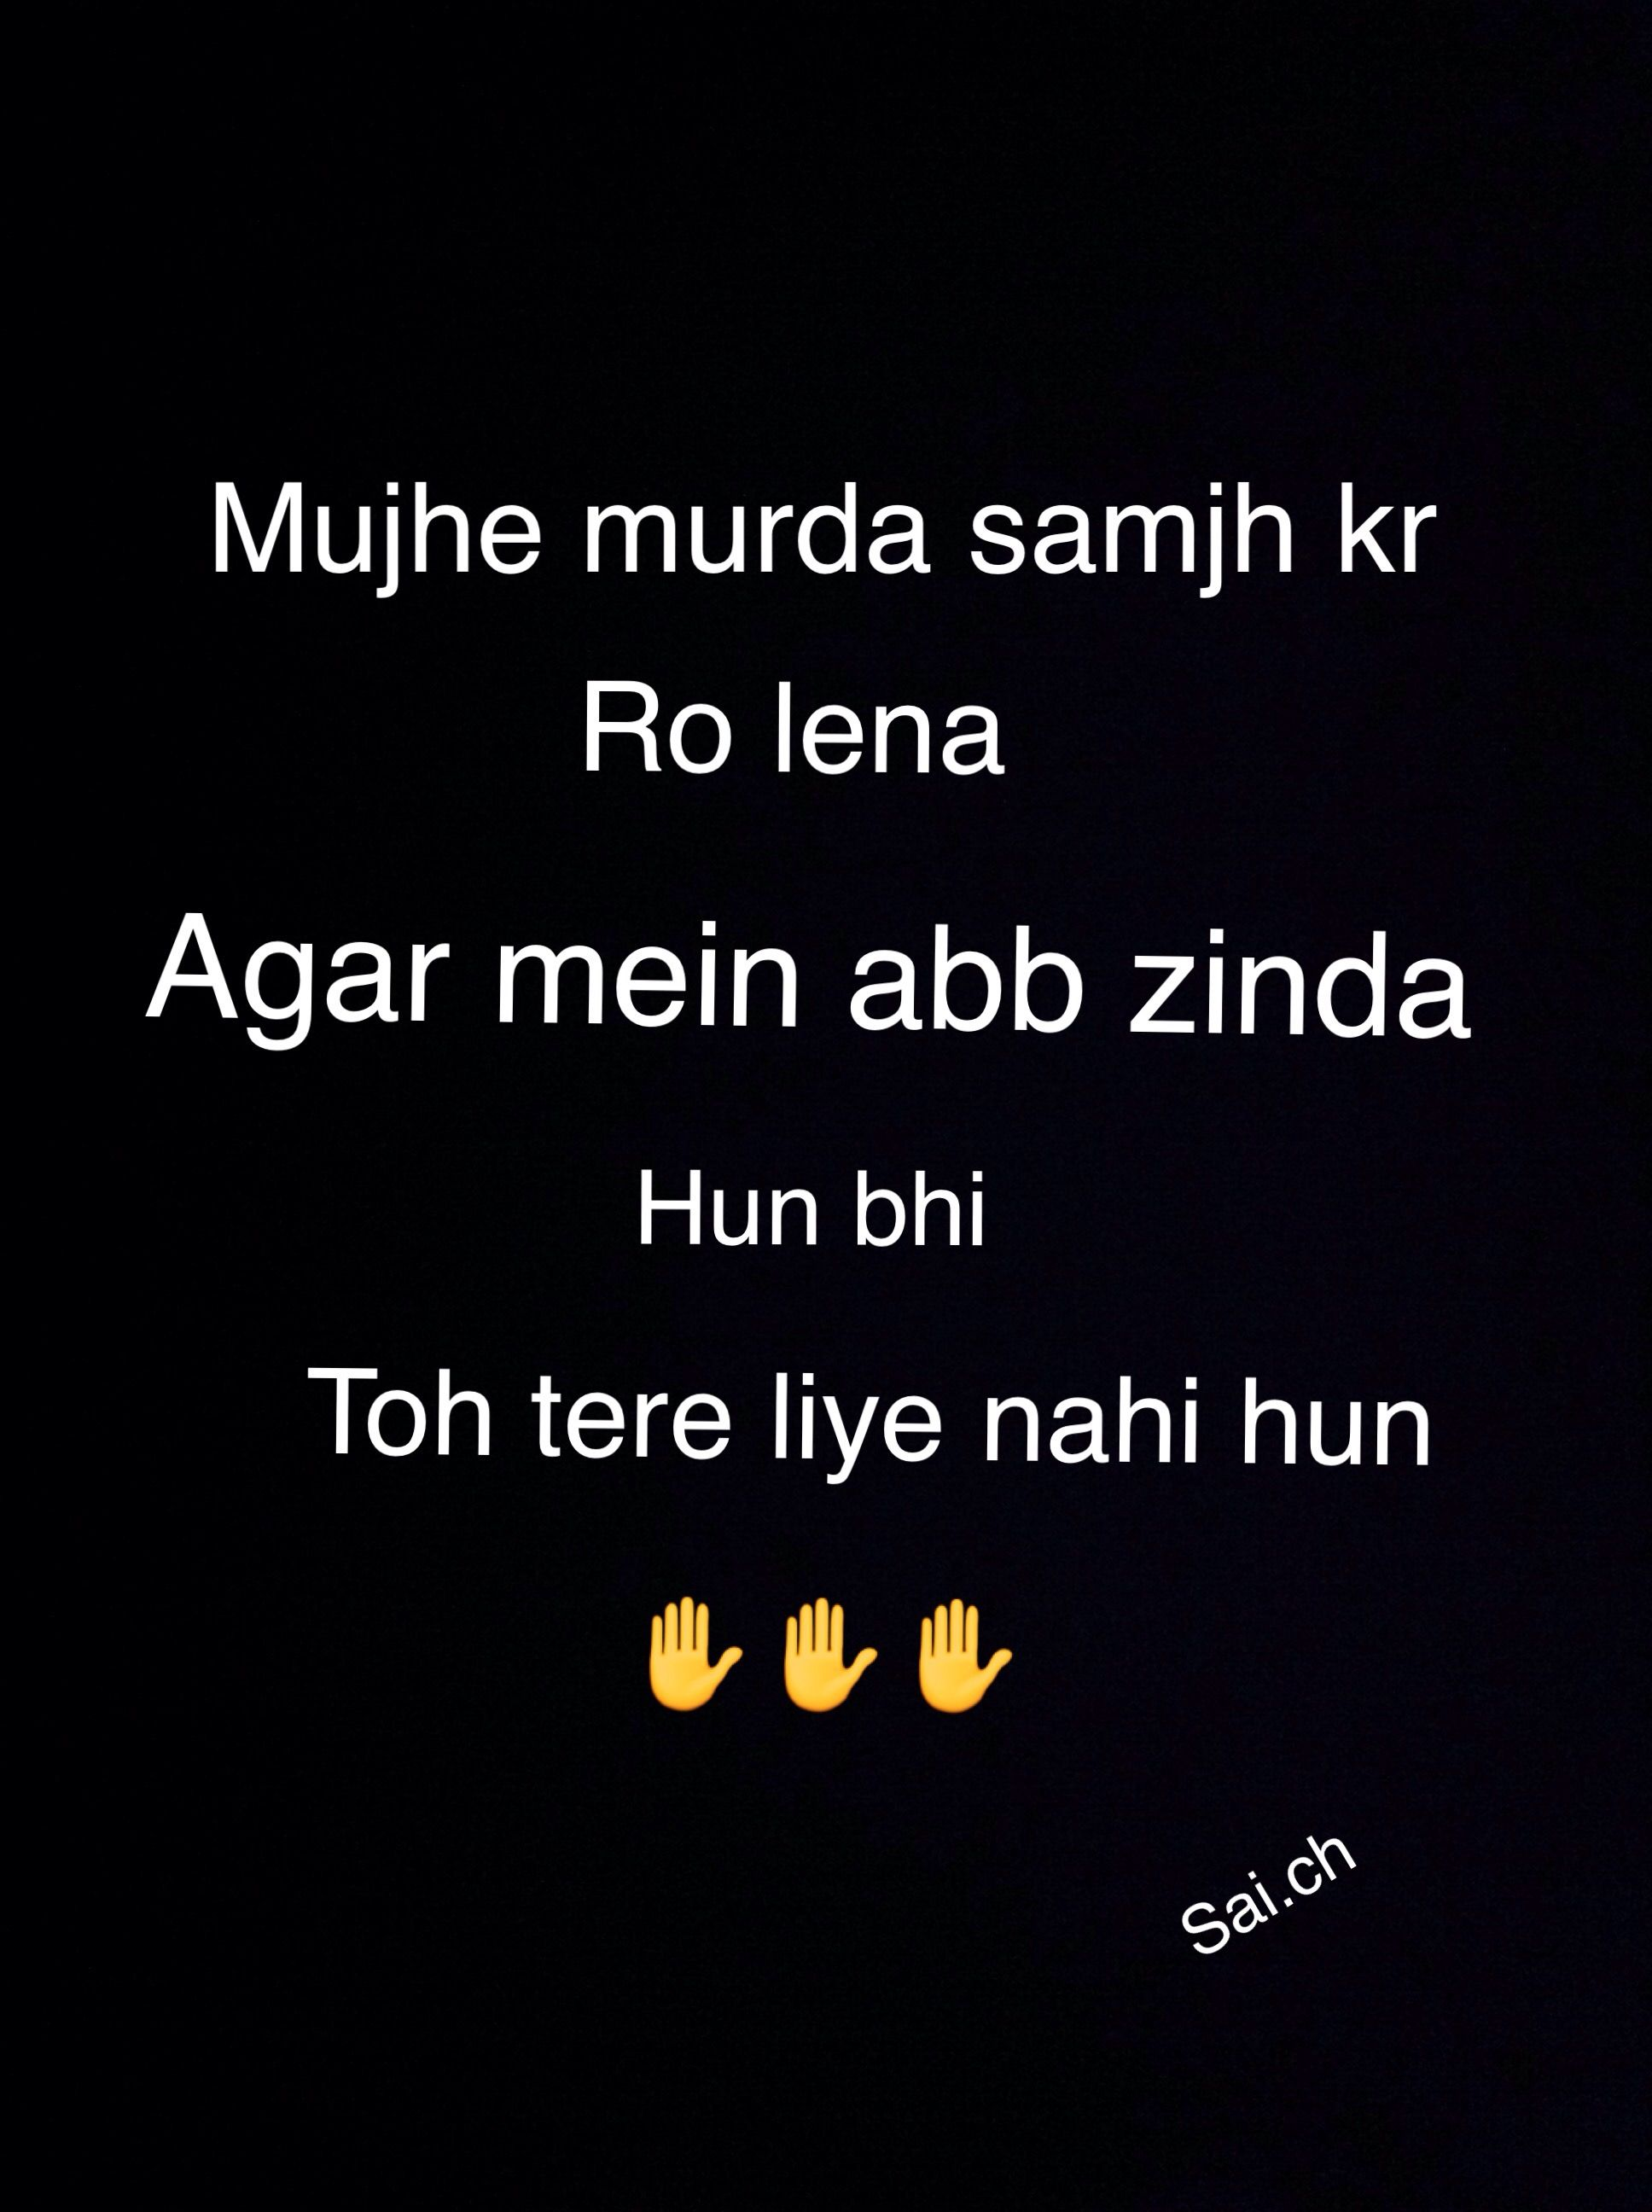 Kisi Ke Liye B Ni Hun Abh Food And Drink Quotes Sad Quotes